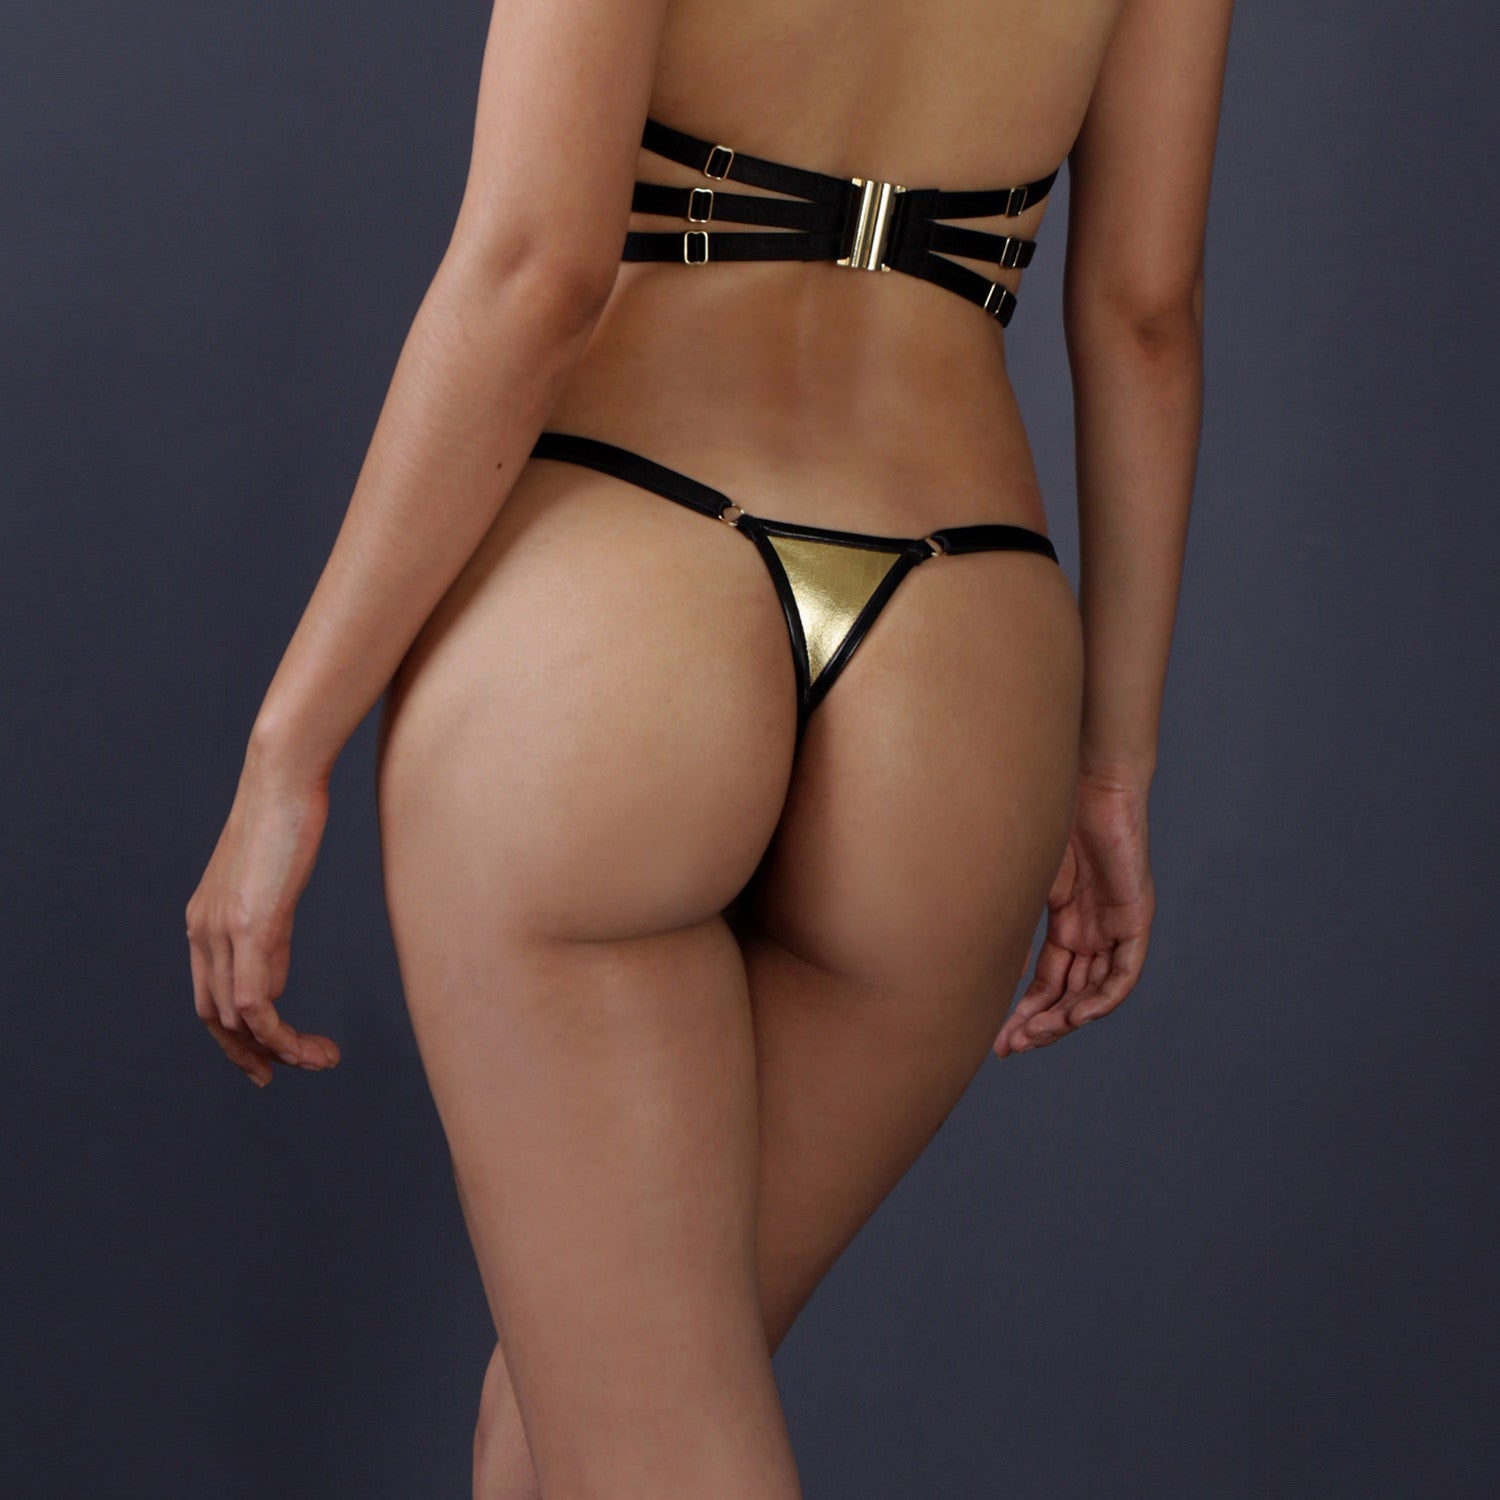 Wet look g string, Gold and Black wet look G string, Erotic lingerie, Micro G string.